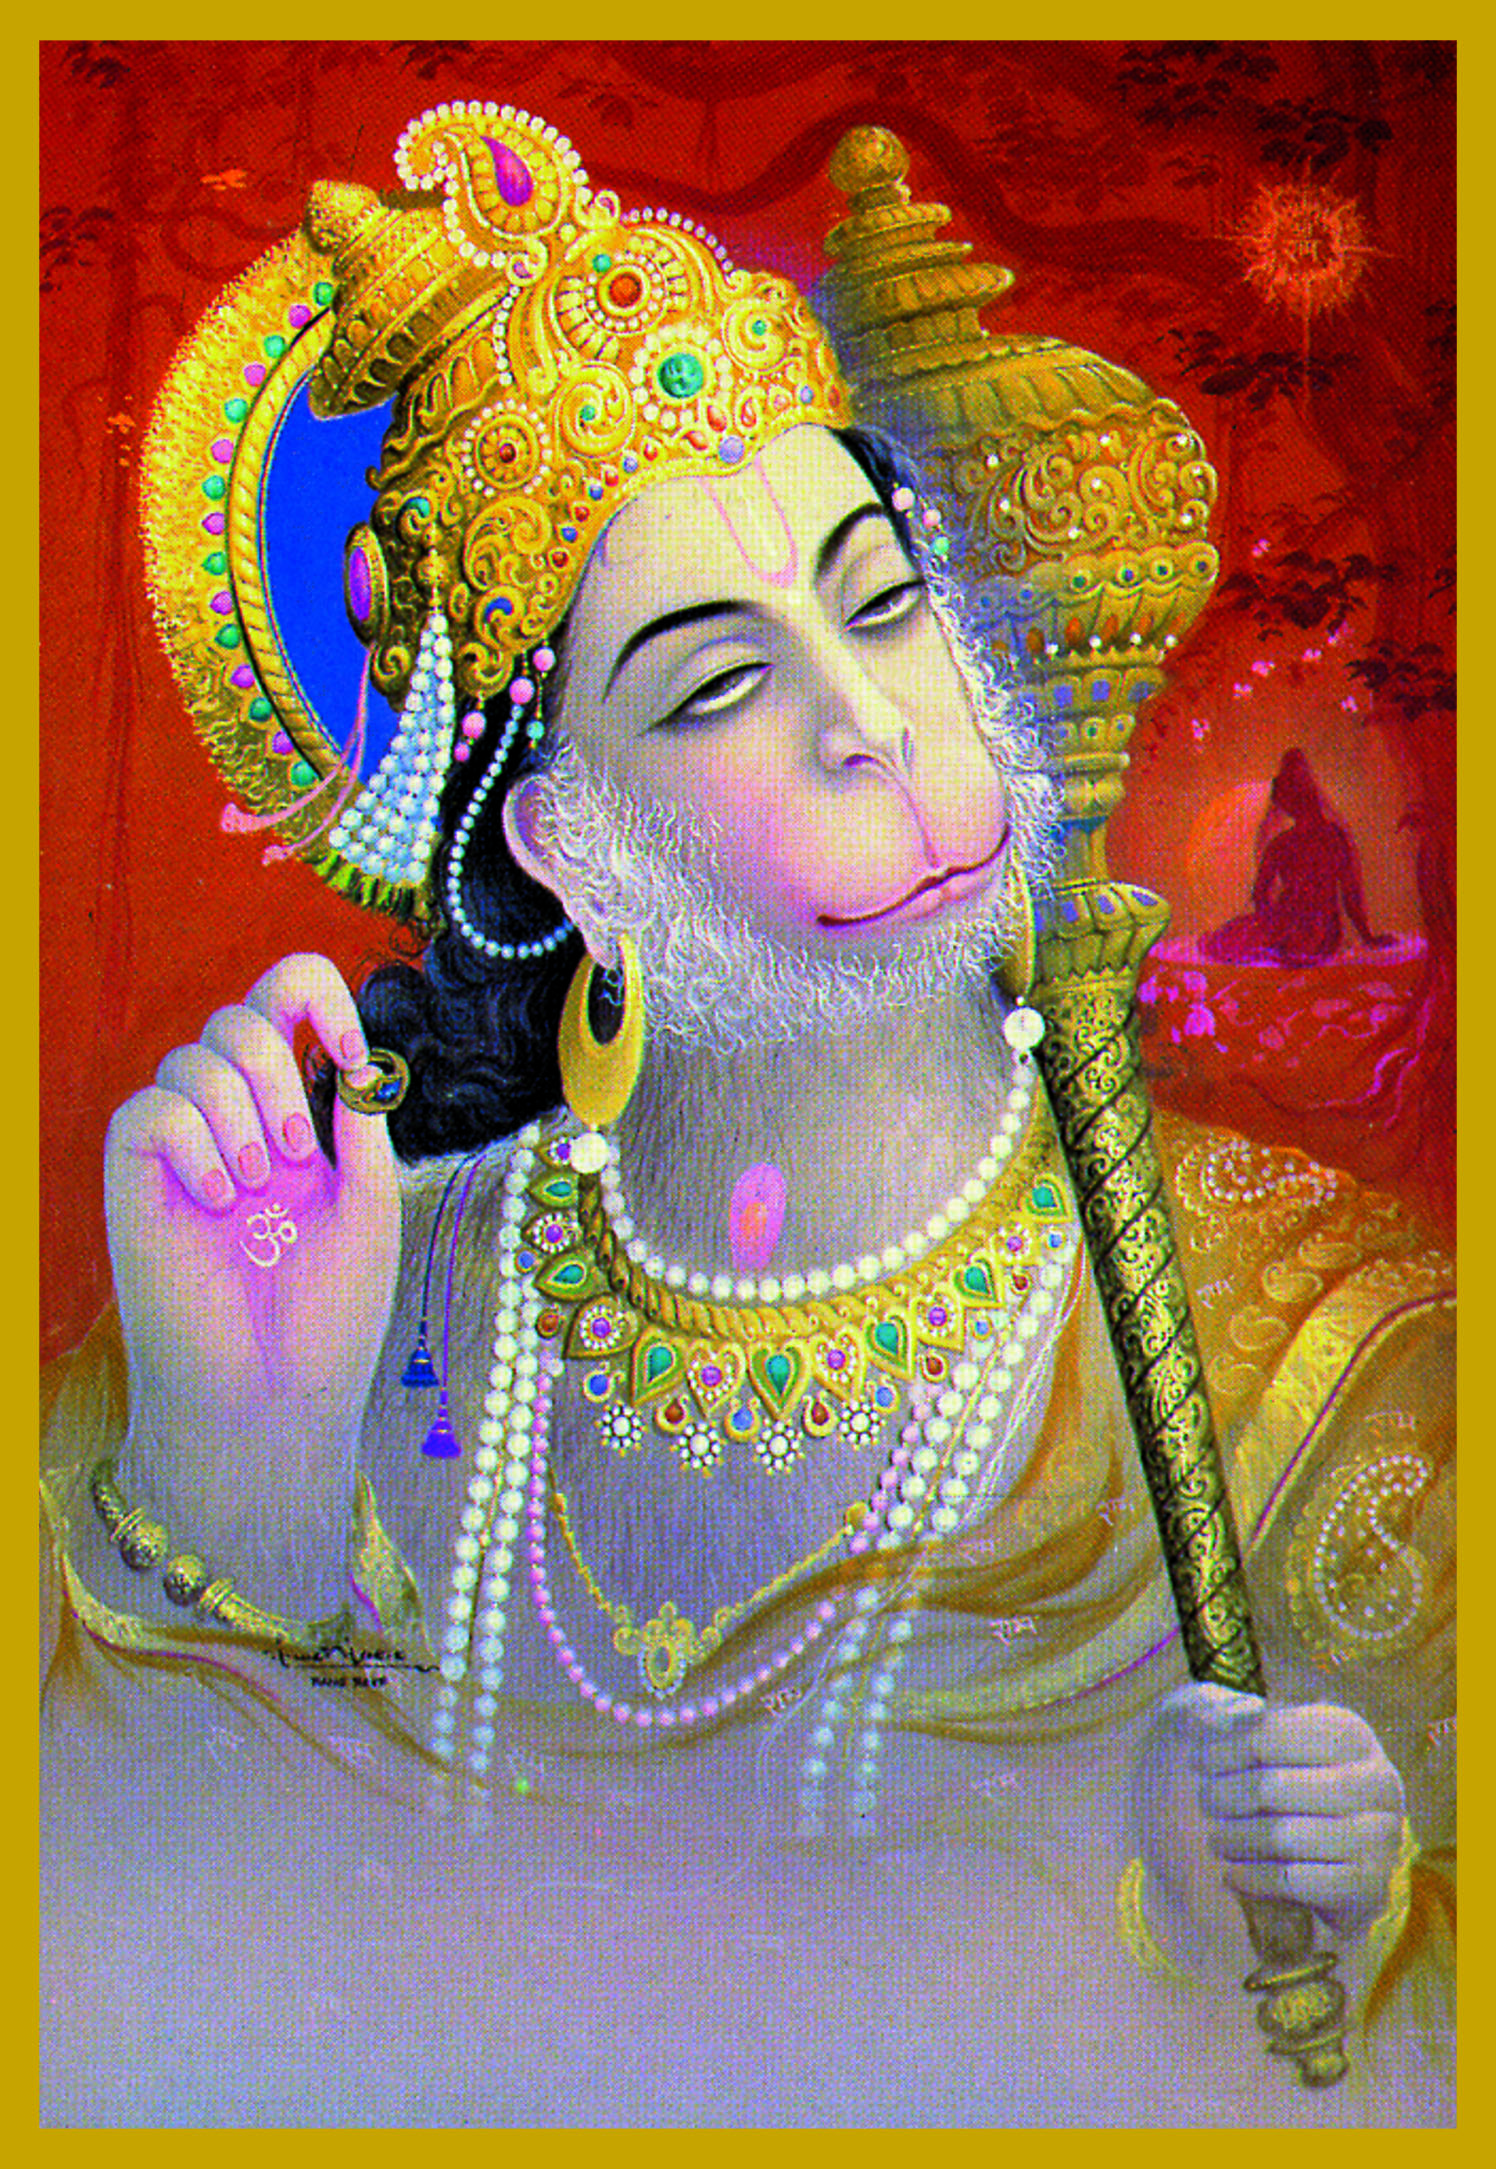 HAN - HANUMANGod of Loyalty, Devotion and ServiceThe monkey god Hanuman embodies Devotion and Service -- he was Lord Rama's brave and loyal general. He is Love In Action!Hanuman inspires us to develop strength and purity to become Perfect Servants to the Divine.